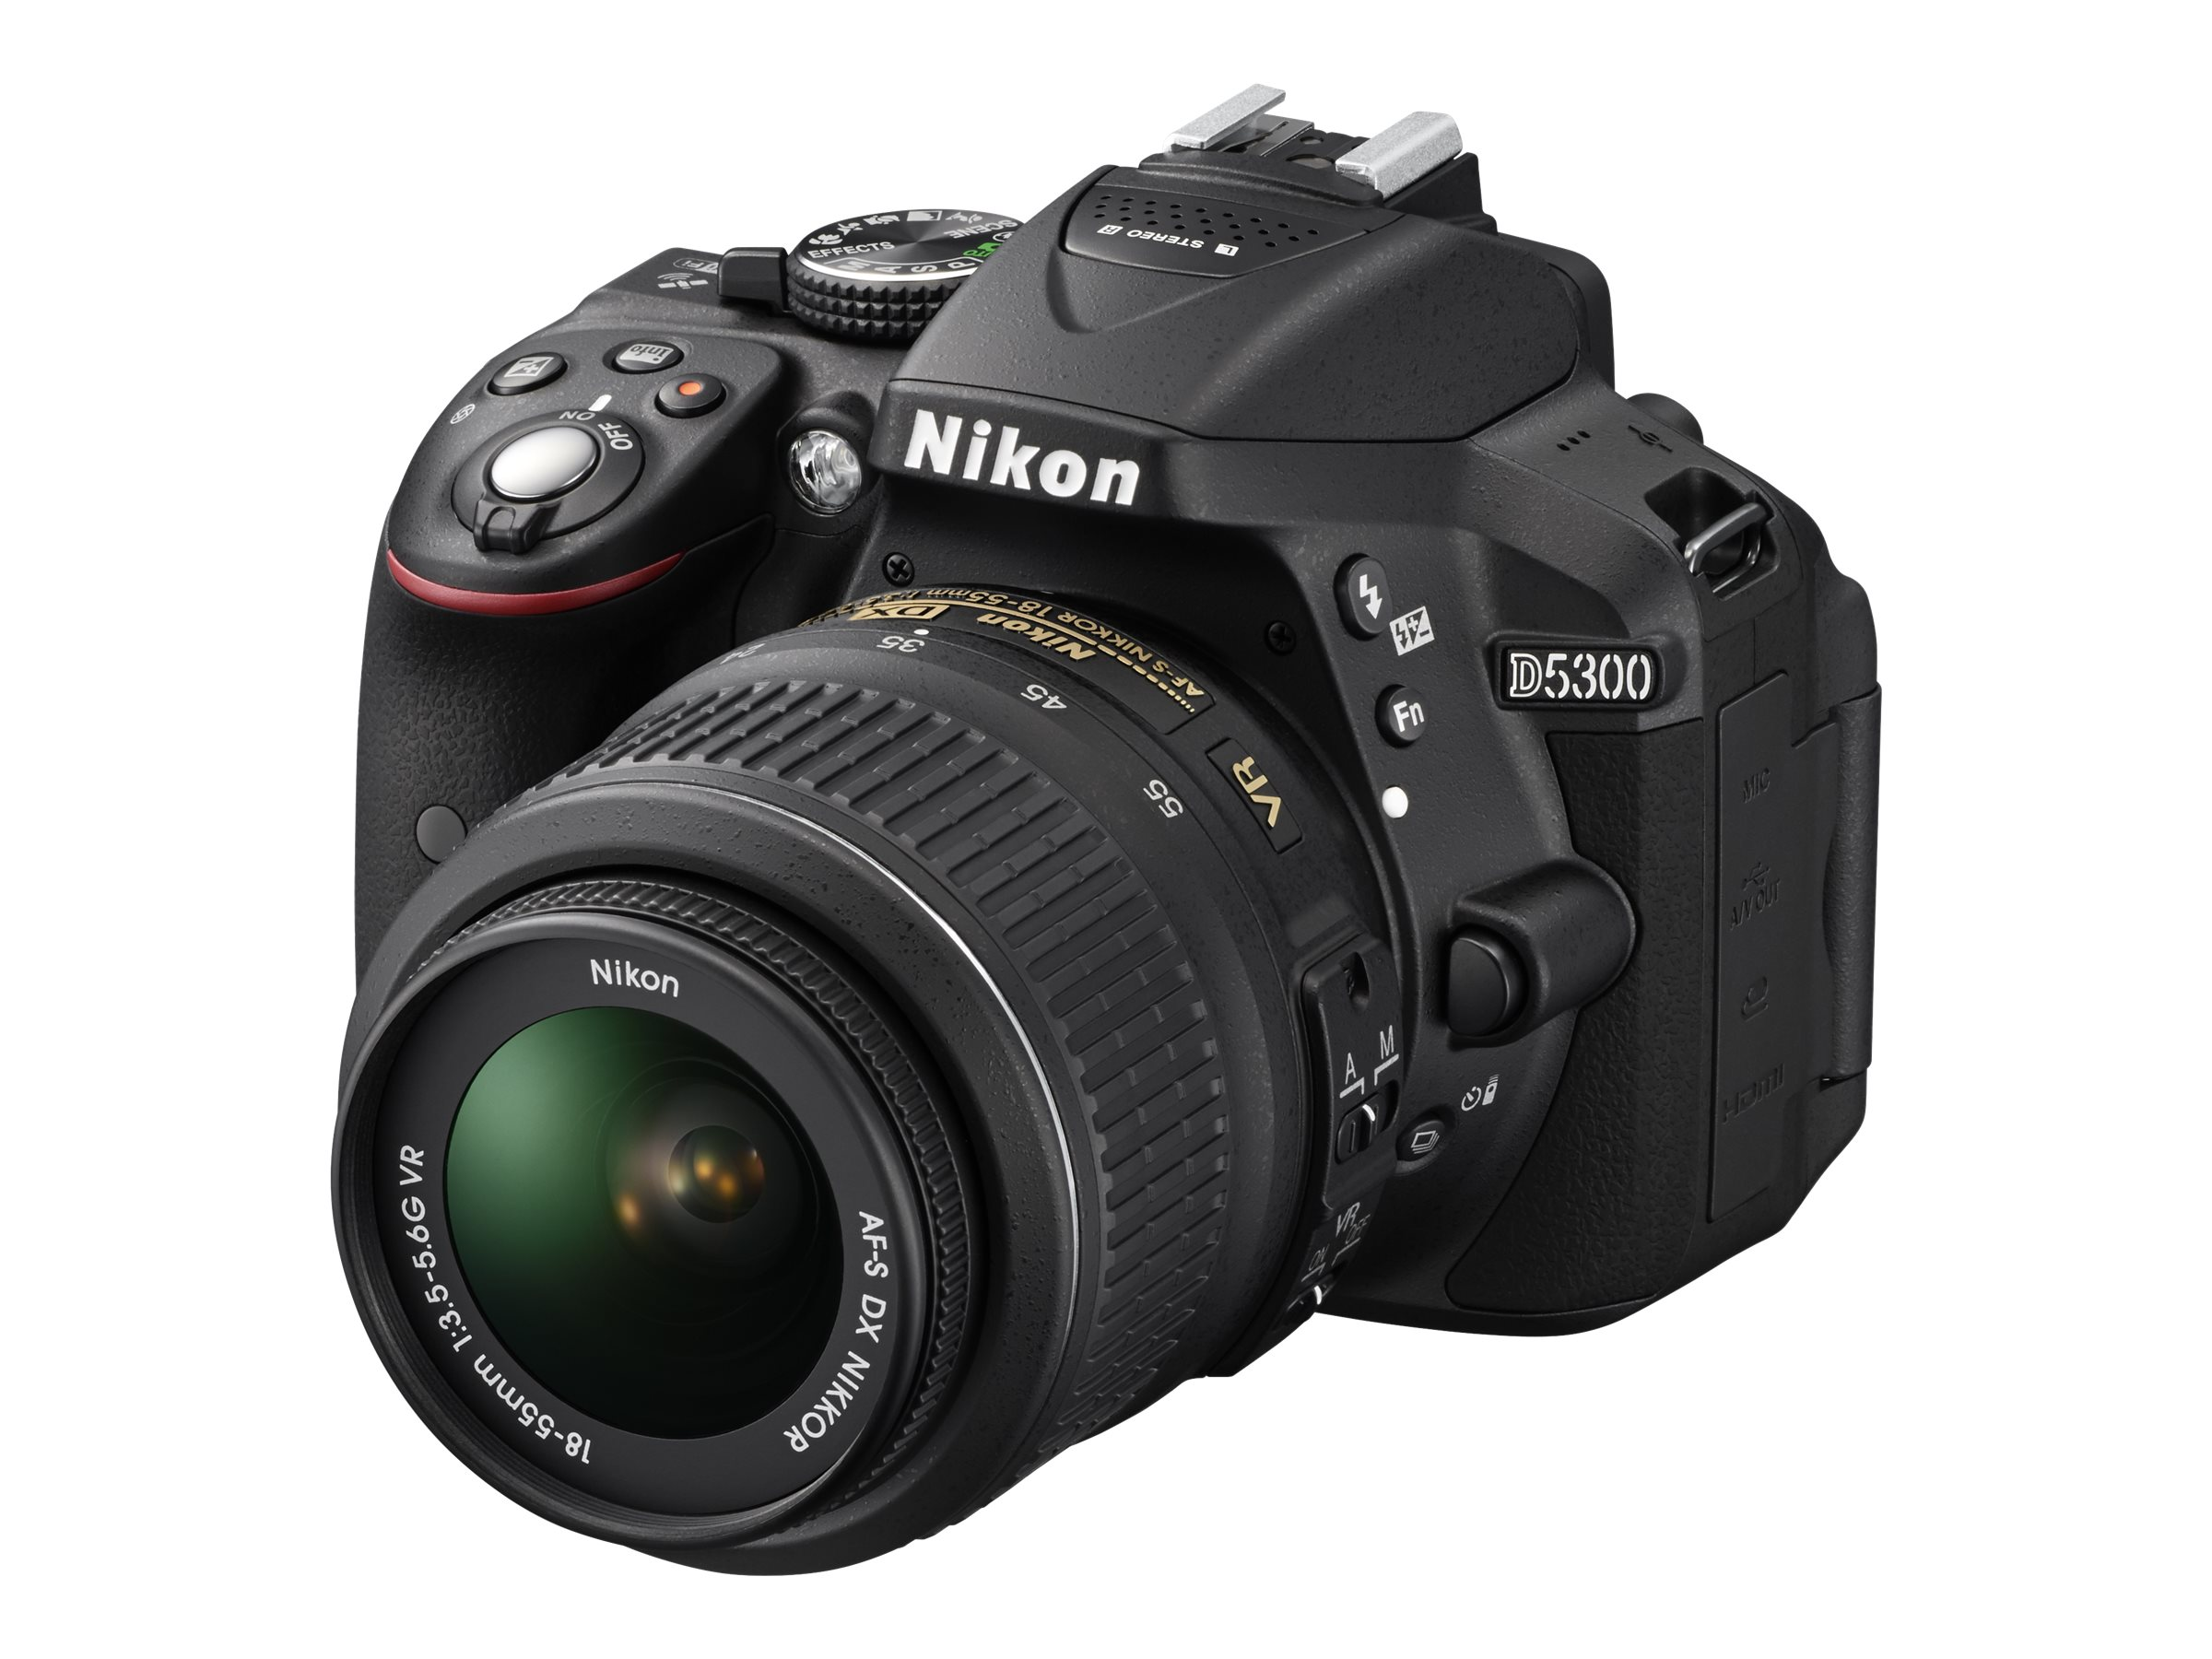 Nikon D5300 DX-Format Digital SLR with 18-140mm VR Lens - Black, 13303